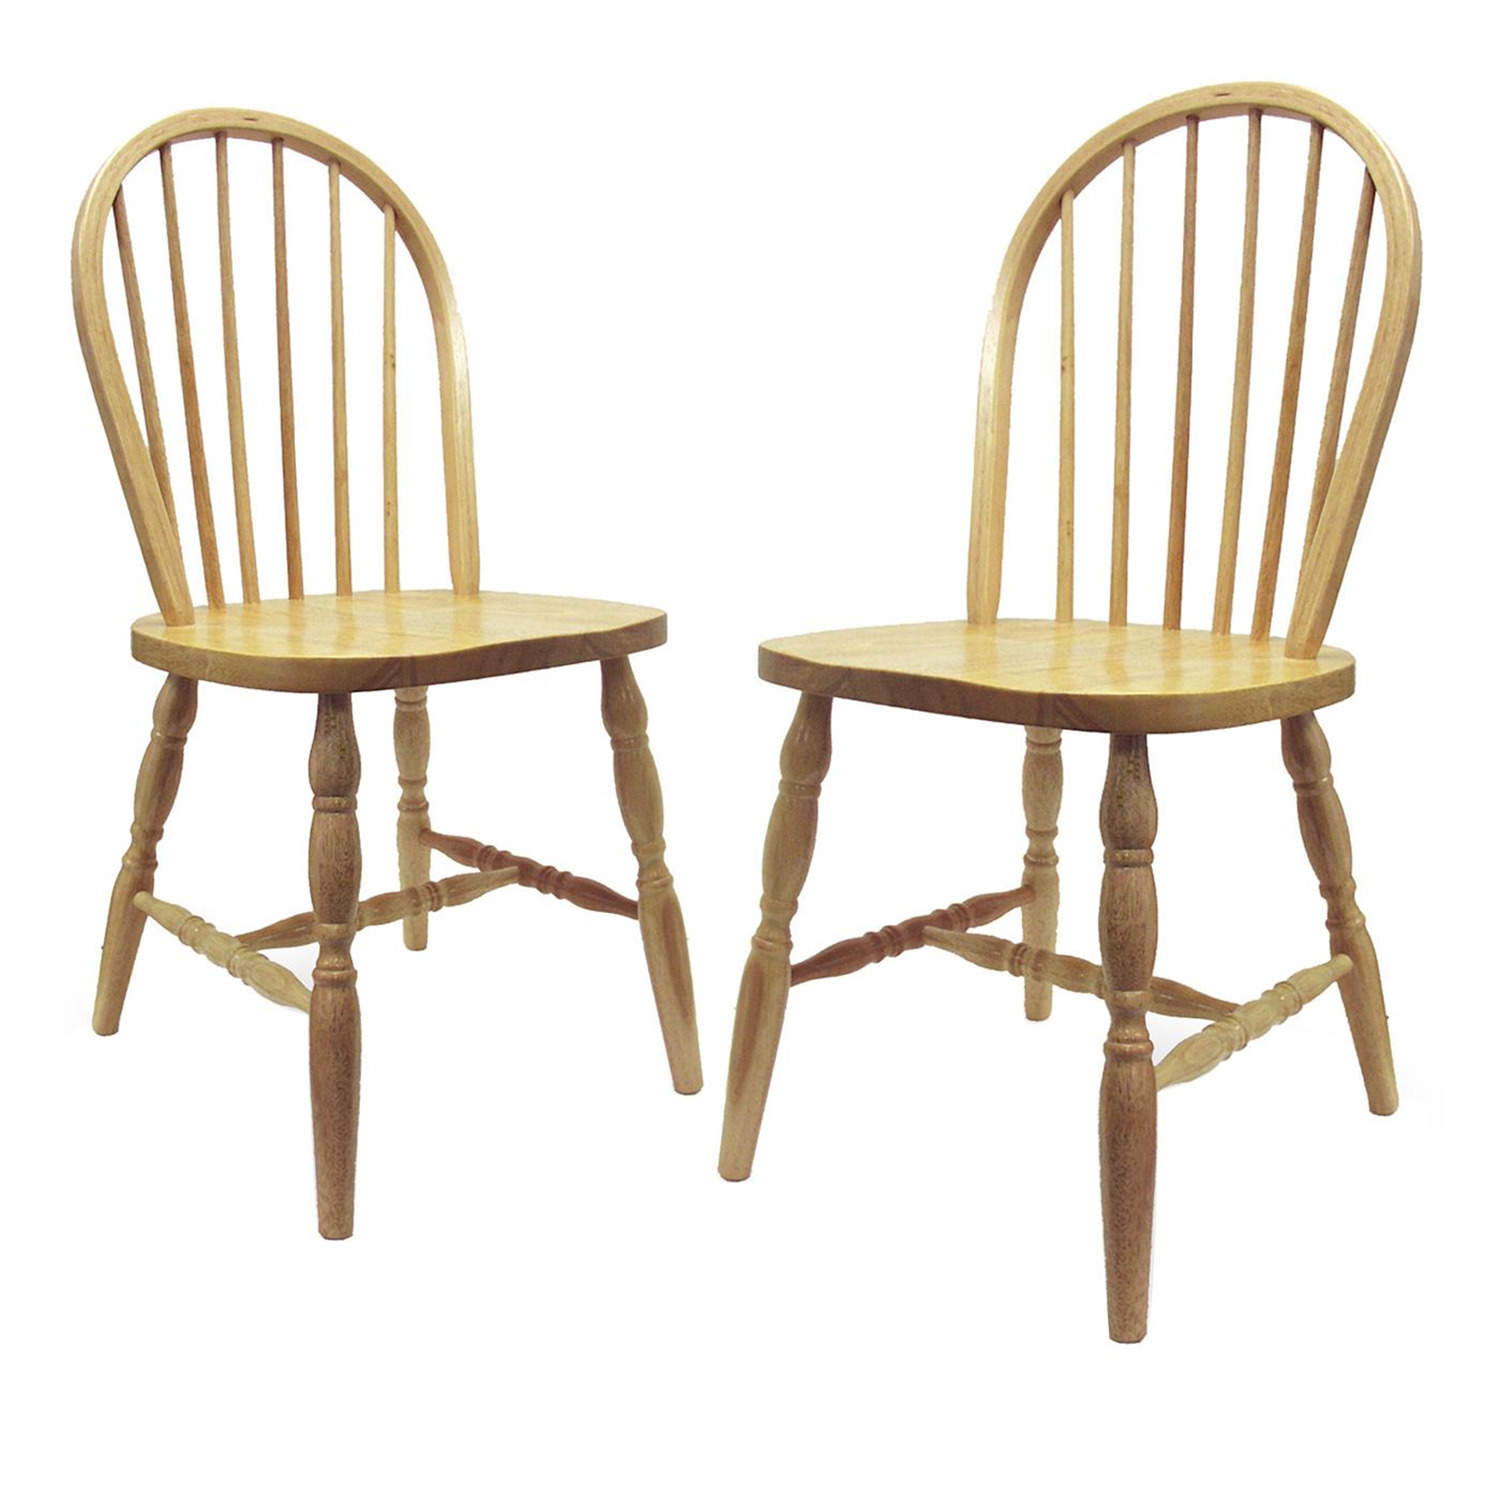 Winsome Set of 2 Windsor Chair turn legs Assembled by OJ merce $135 99